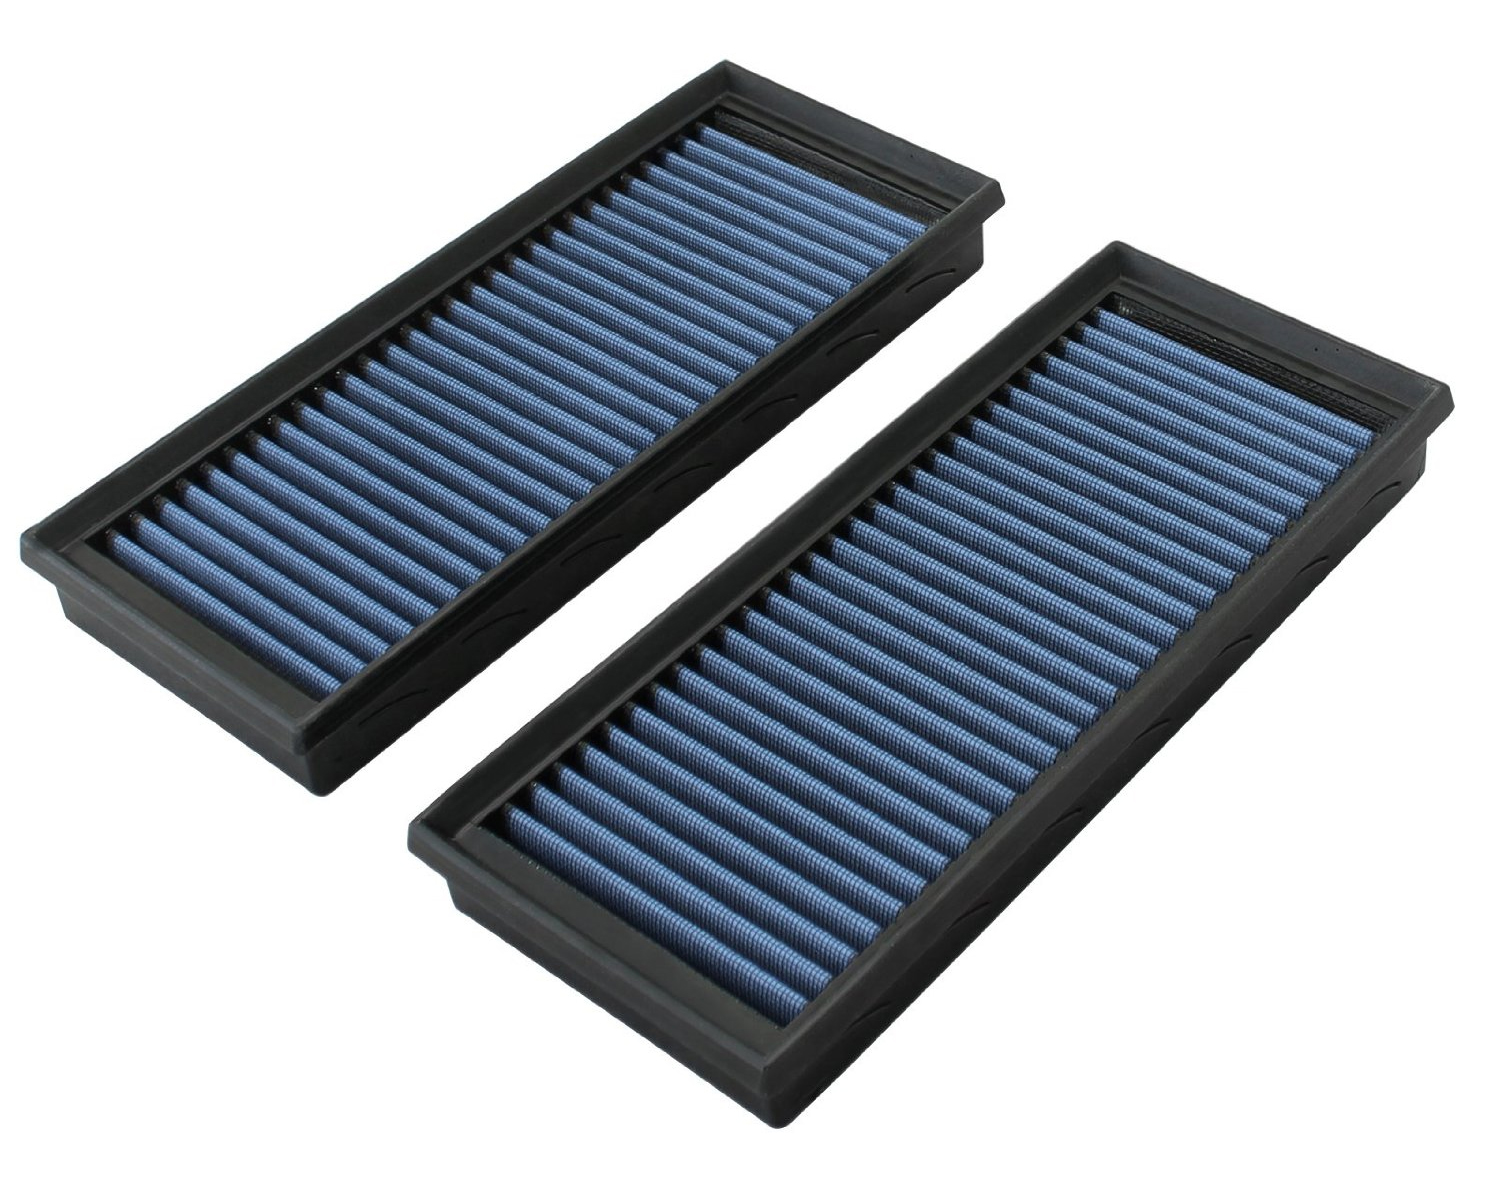 aFe Magnum Flow Air Filter PRO 5R Mercedes-Benz CL63 AMG 11-13